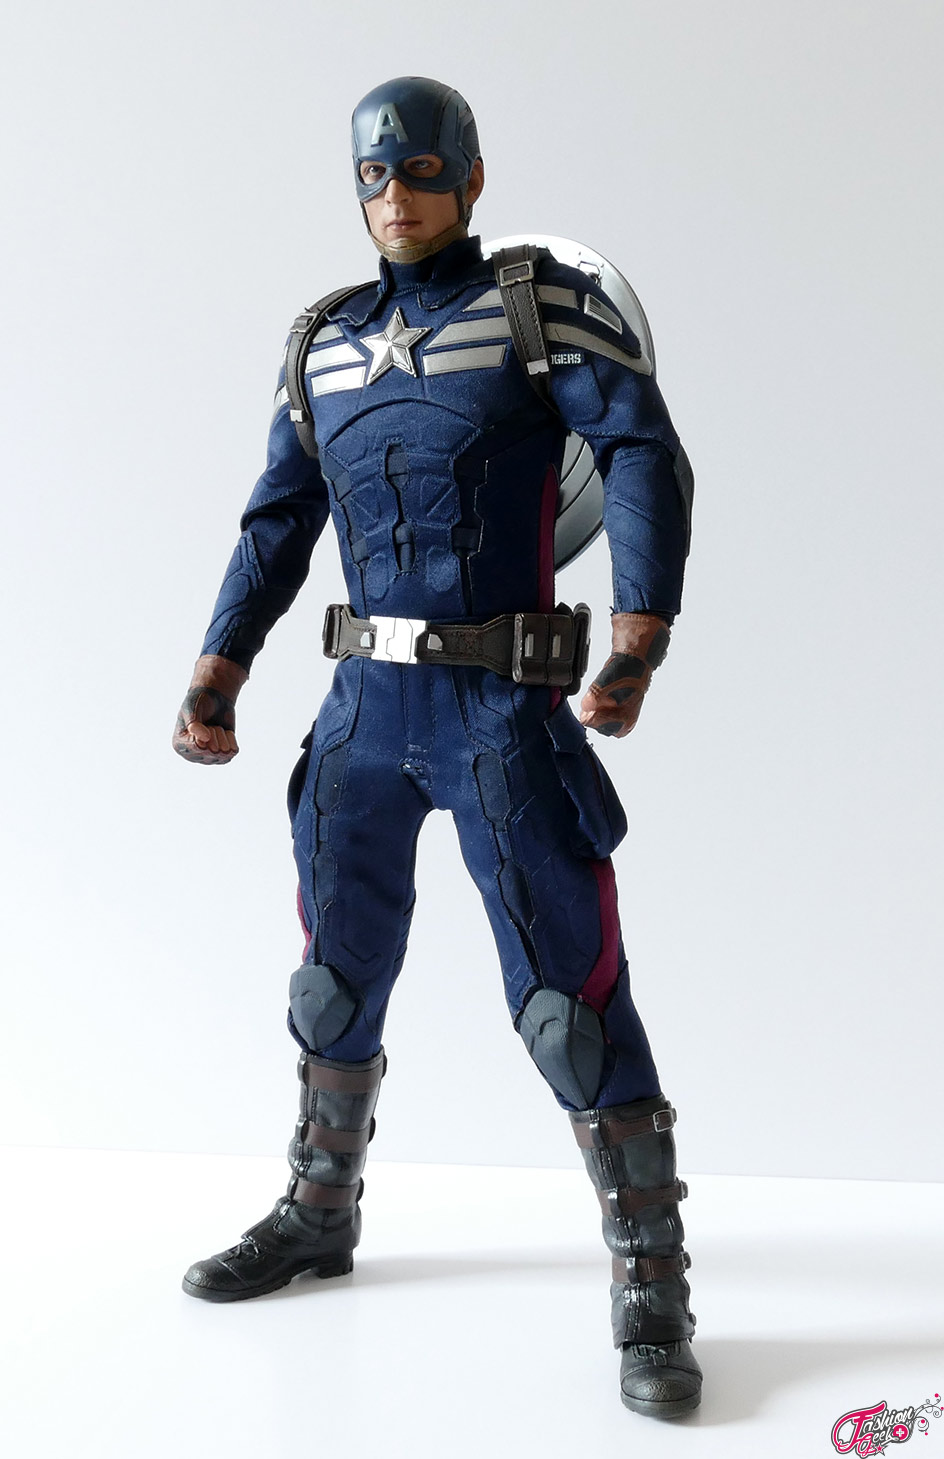 Captain-America-Hottoys-Winter-21